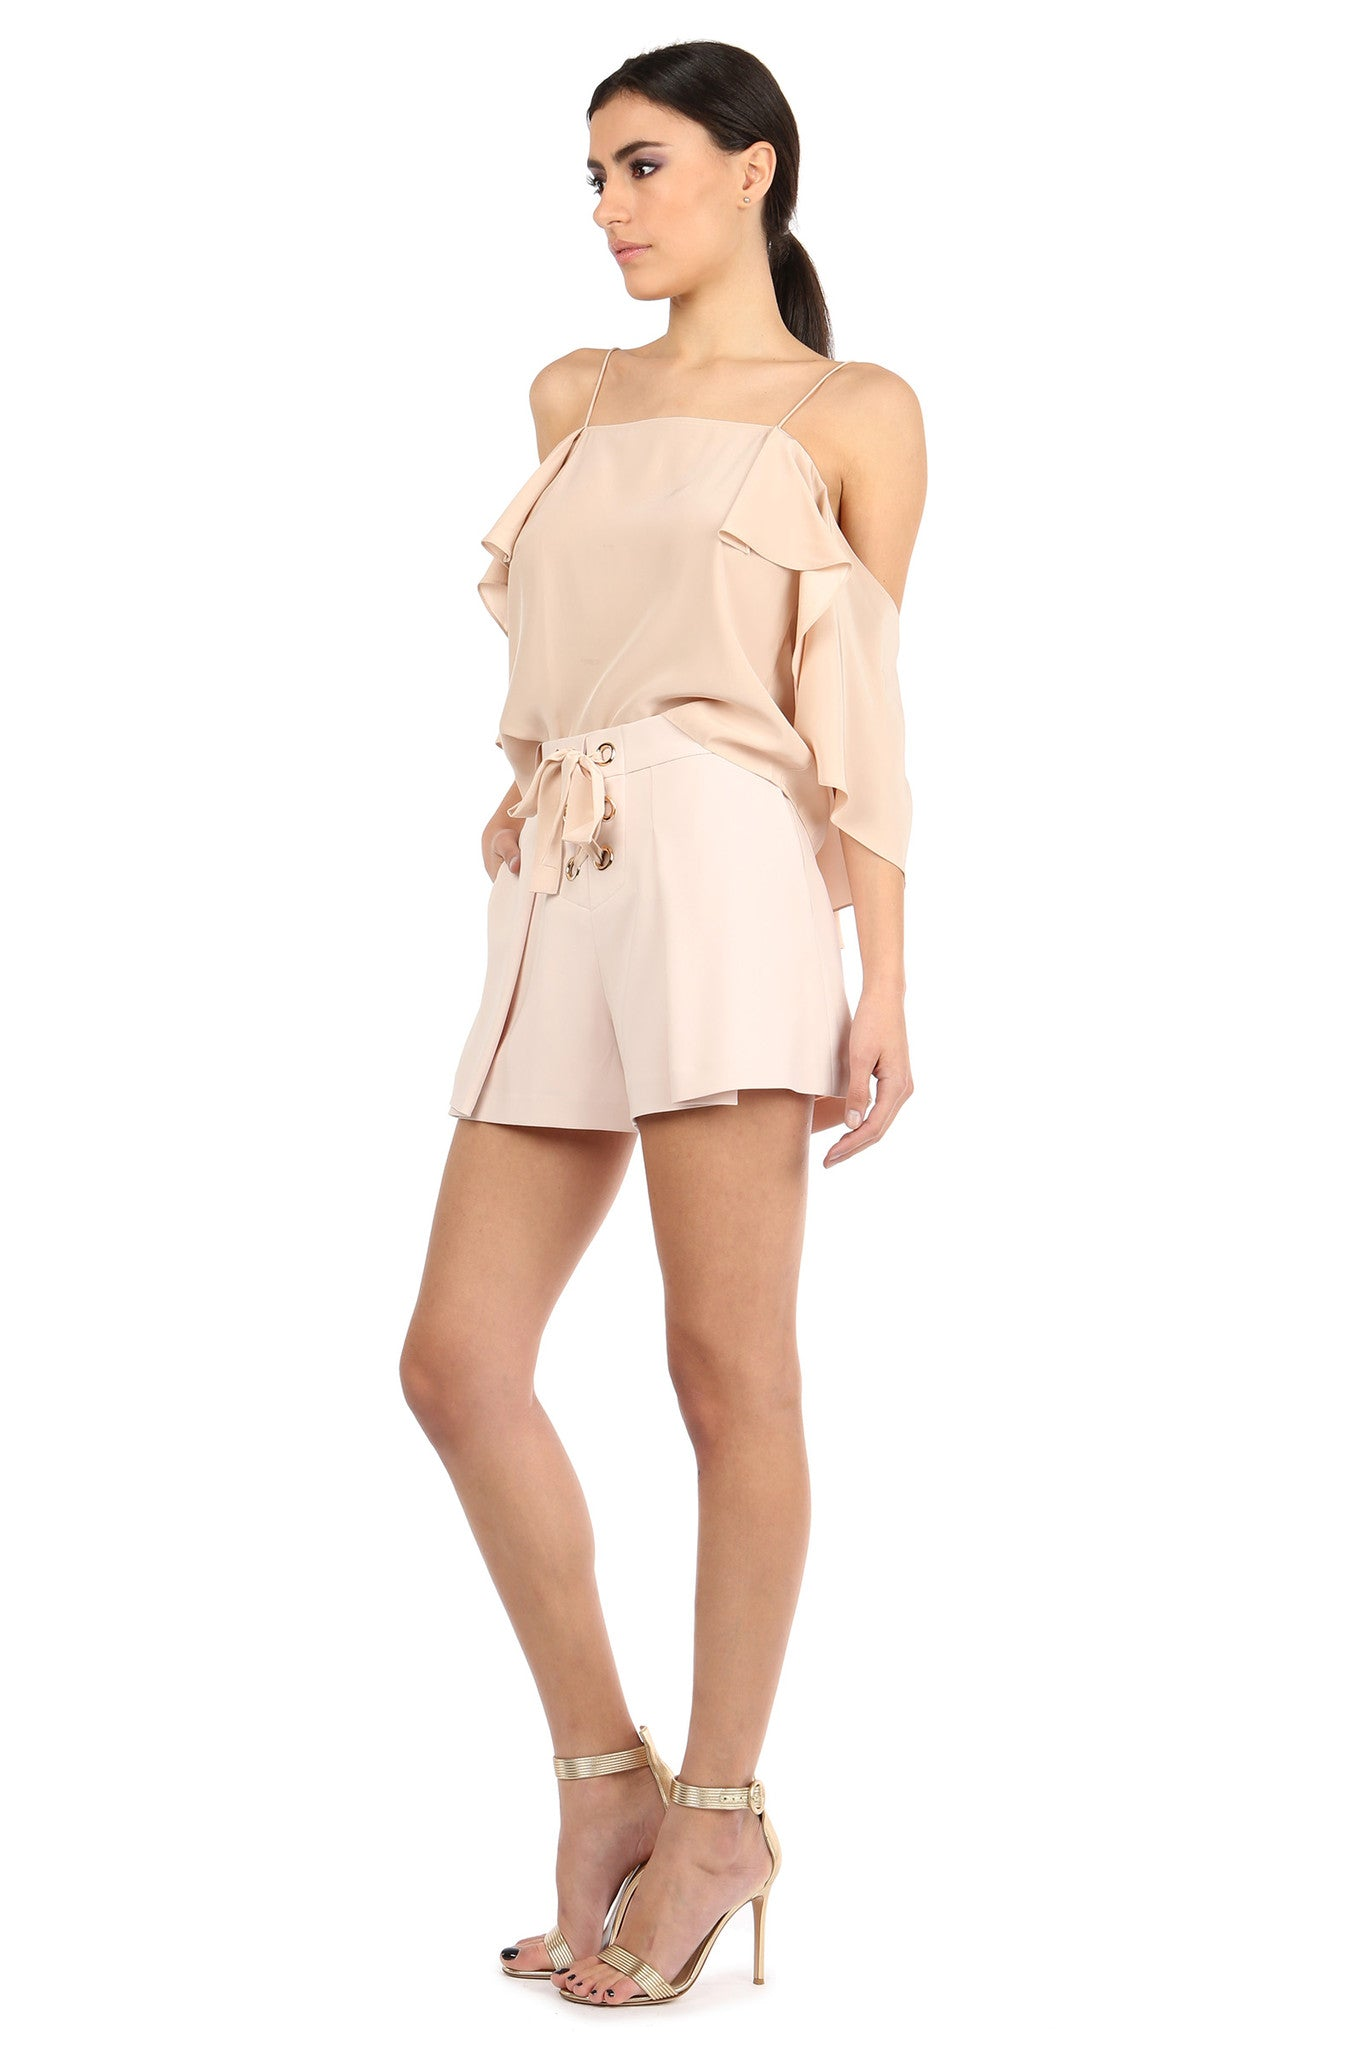 Jay Godfrey Sand Flowy Off-the-Shoulder Top - Side View